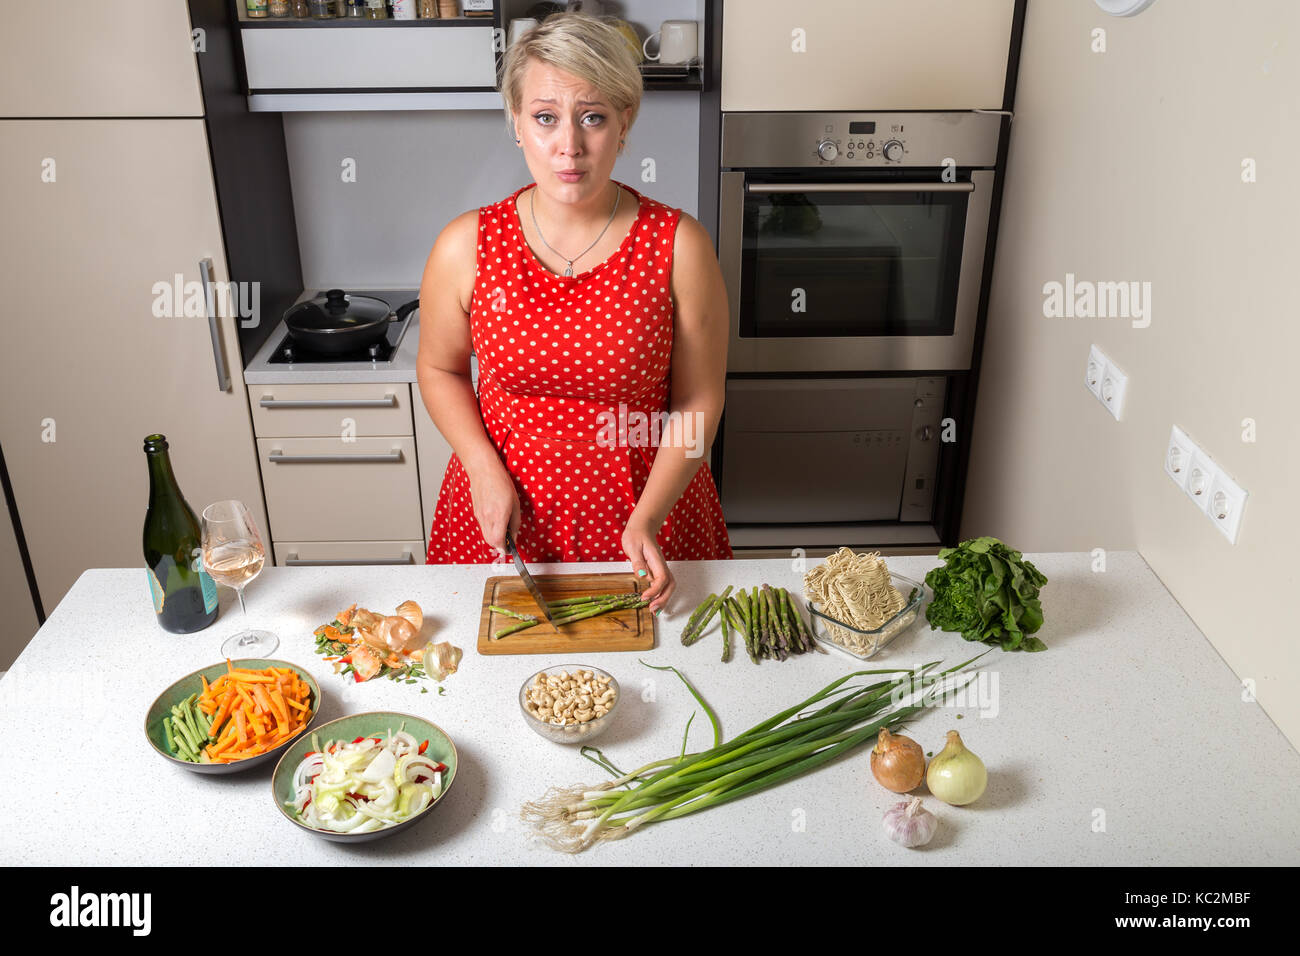 Surprised young woman in kitchen cutting asparagus Stock Photo